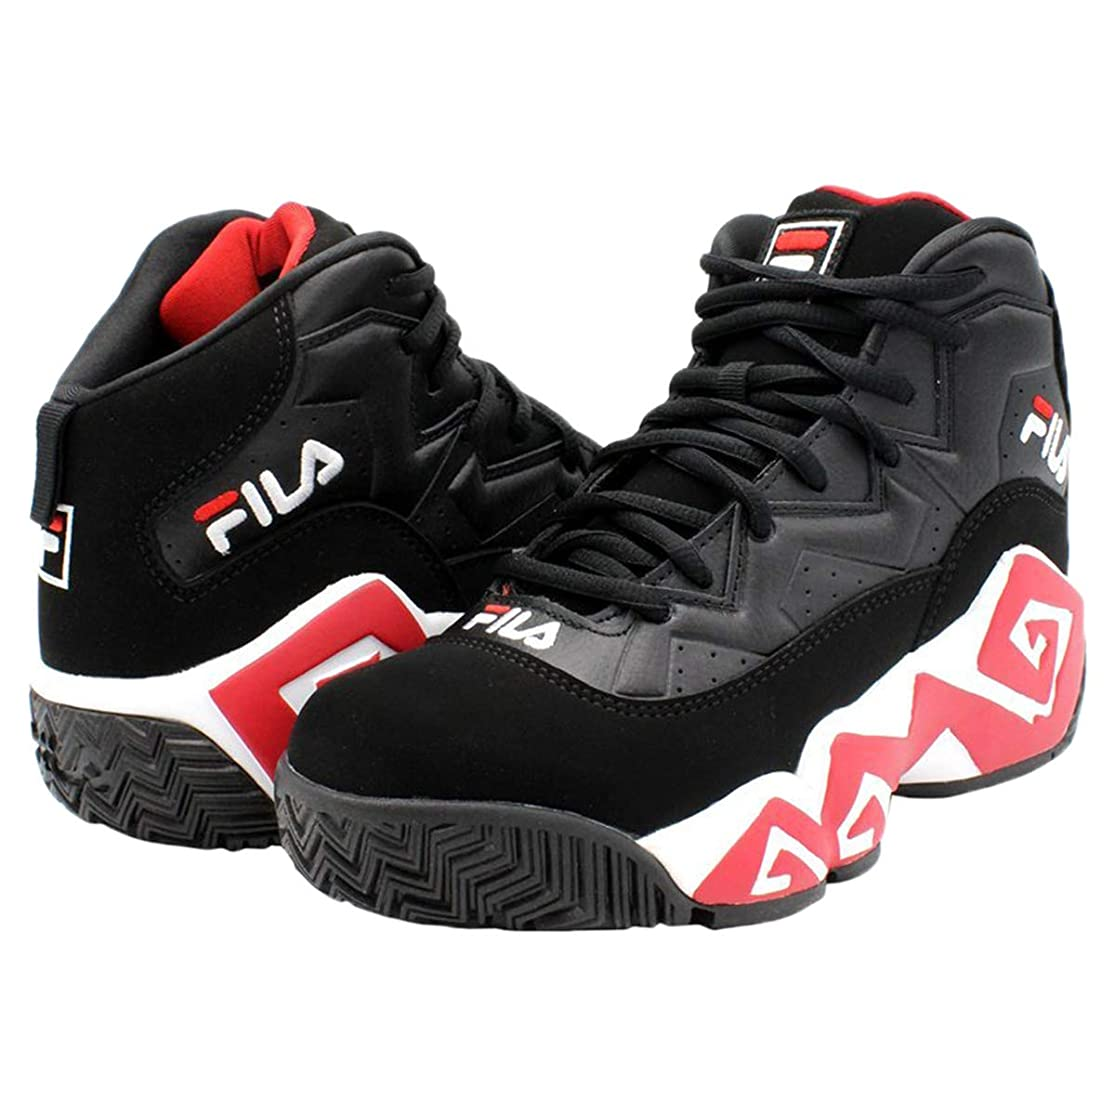 Fila Men's MB Leather Retro High-Top Basketball Trainers Shoes Sneakers znwyaiao0